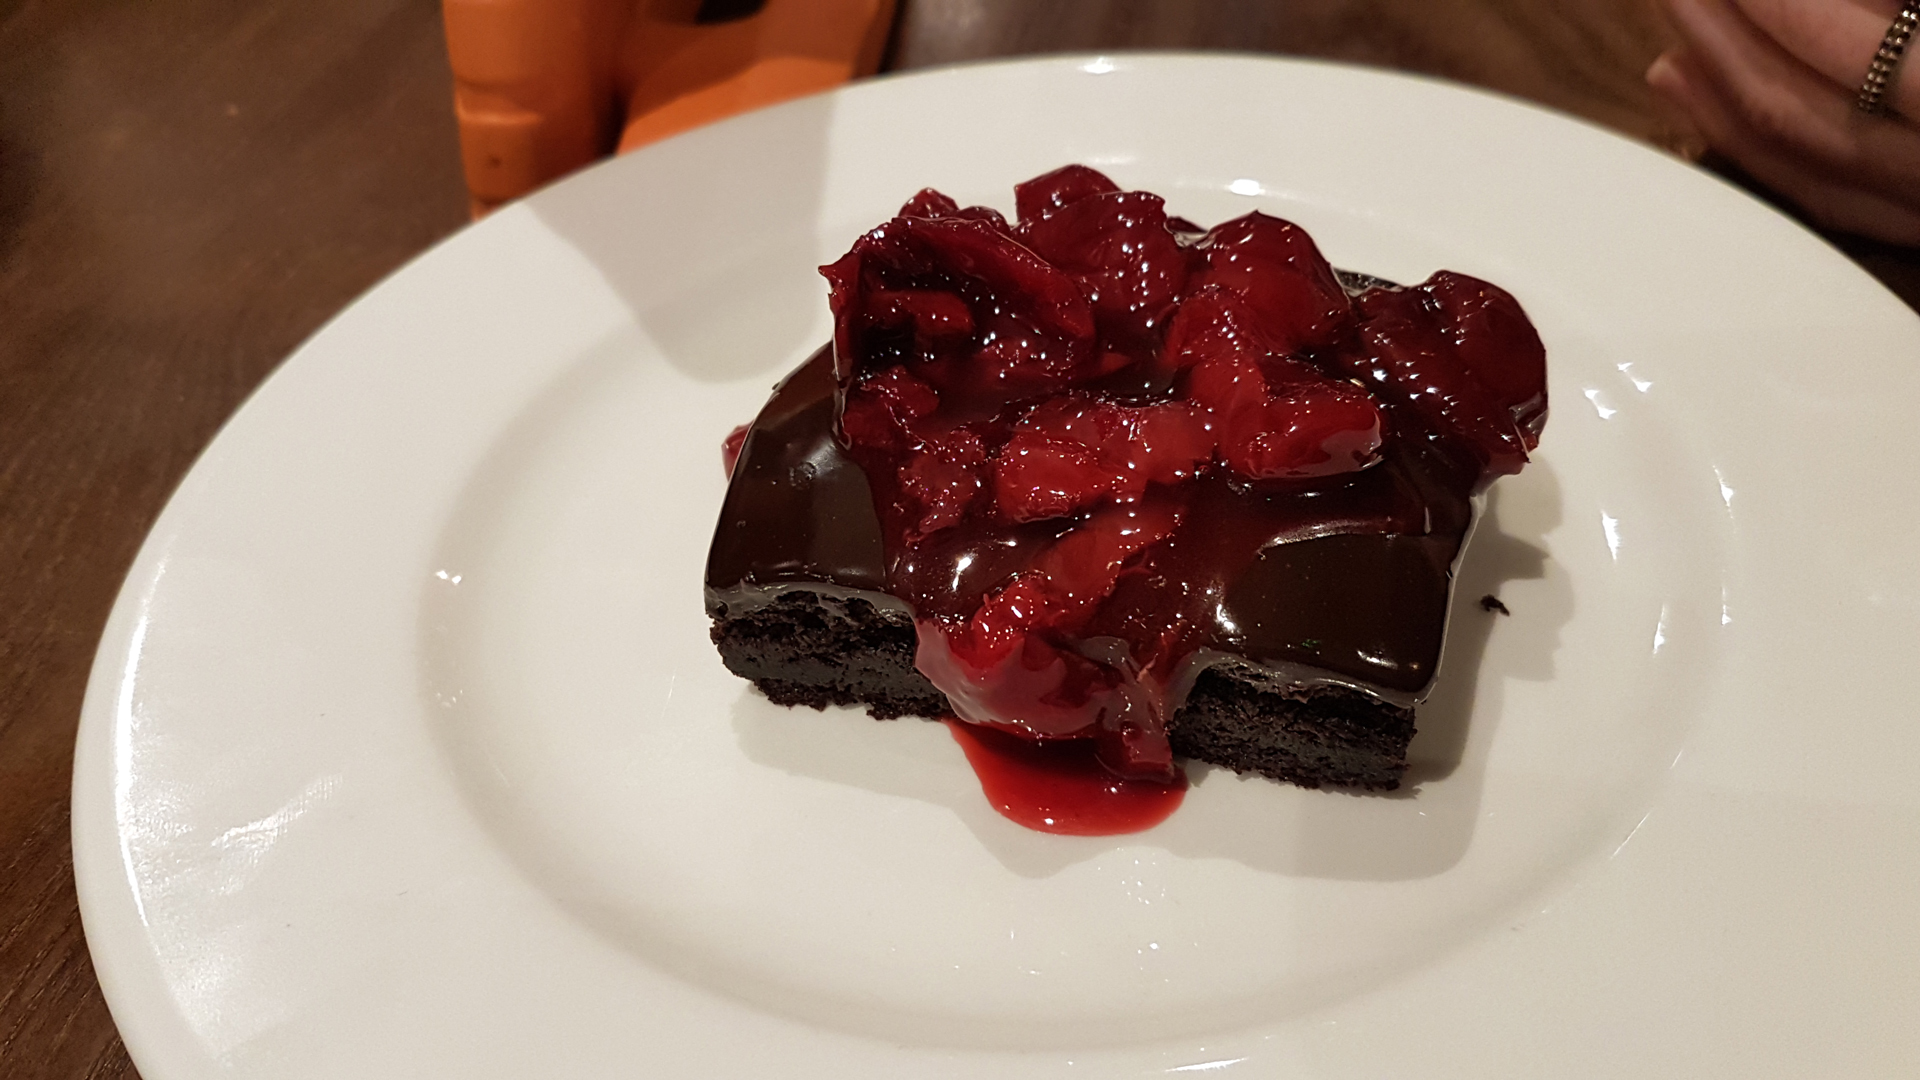 Delicious Morello cioccola dessert (vegan and gluten free) at Bella Italia Hanover Street restaurant during Edinburgh's Christmas.